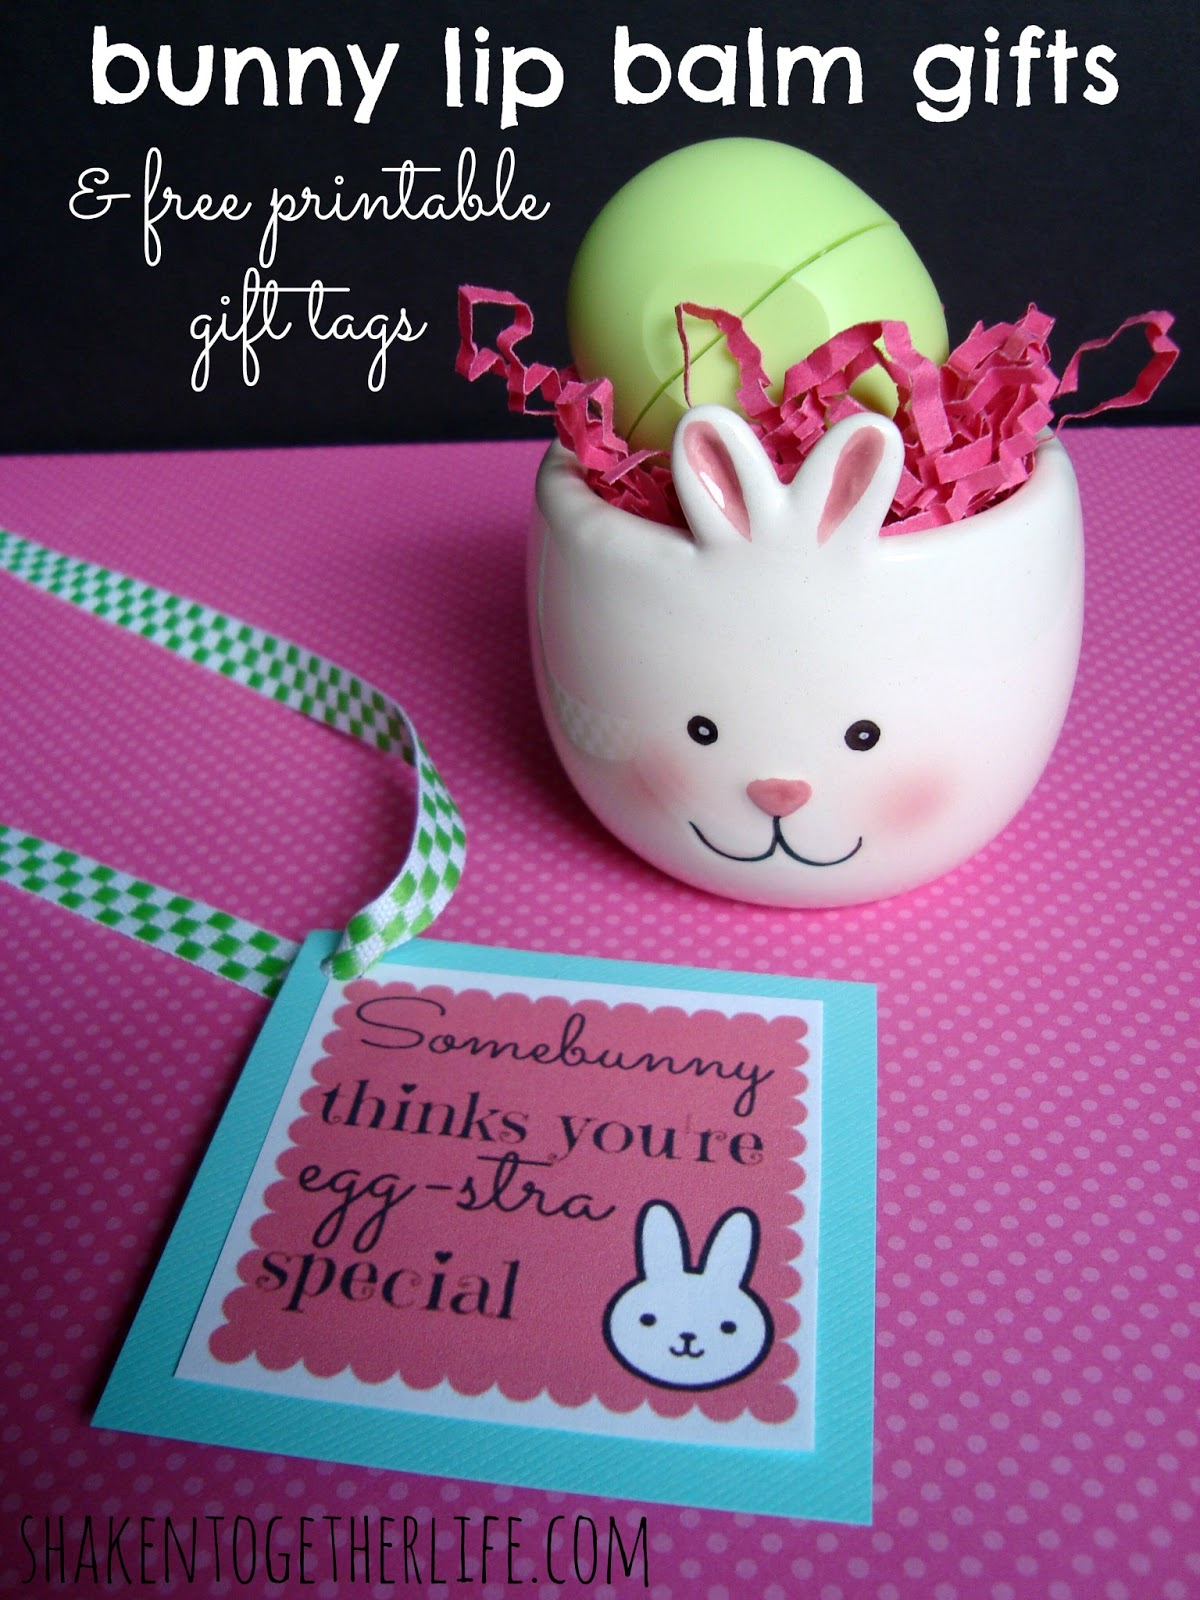 Bunny lip balm gifts for easter printable tags inexpensive easter or spring gift for teachers your baby sitter co workers teens and tweens this one could be it now if only these cute little negle Image collections